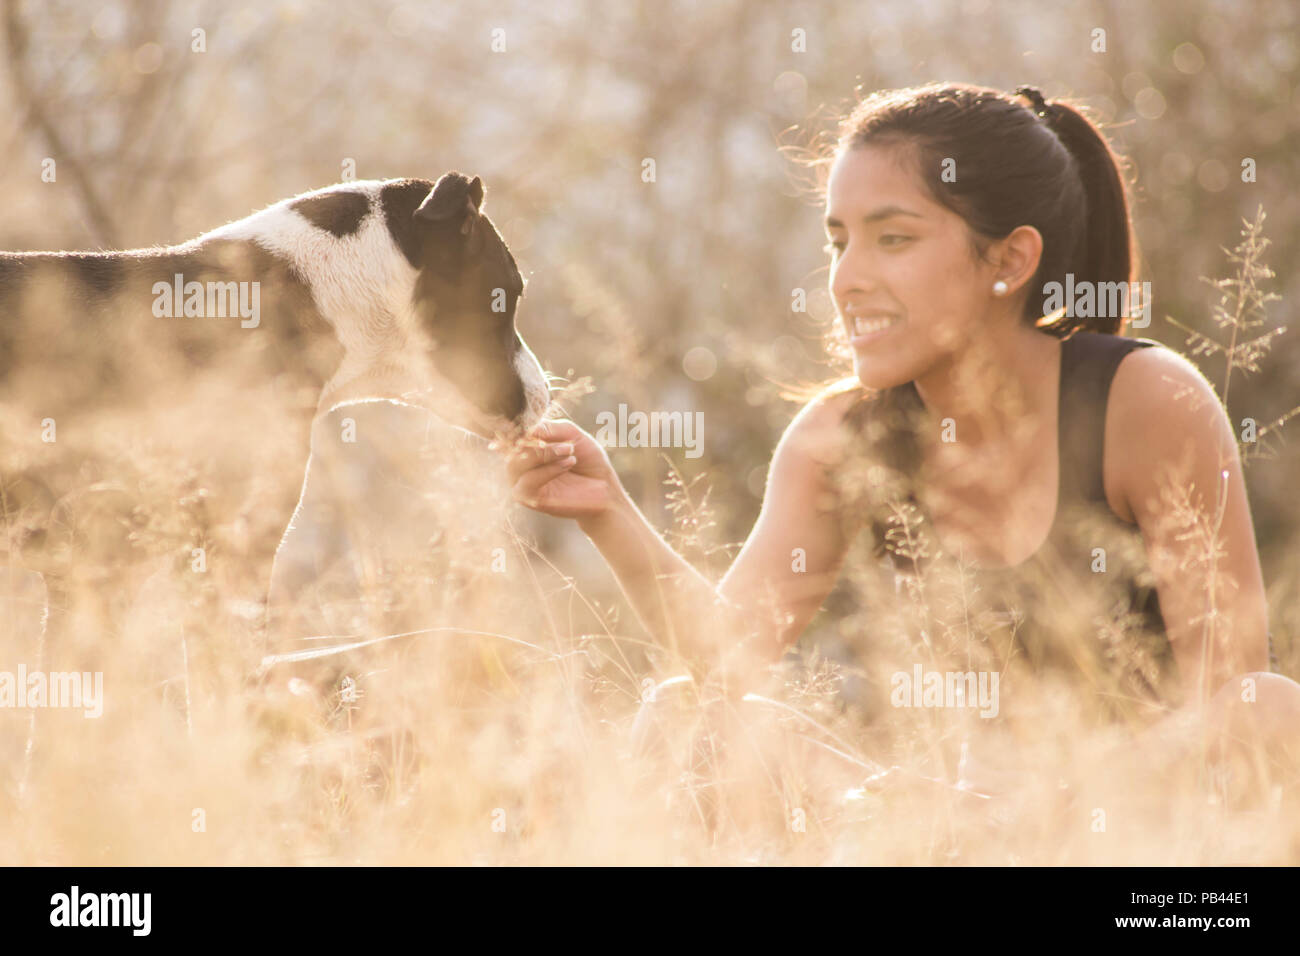 Girl Playing with her dog - Stock Image